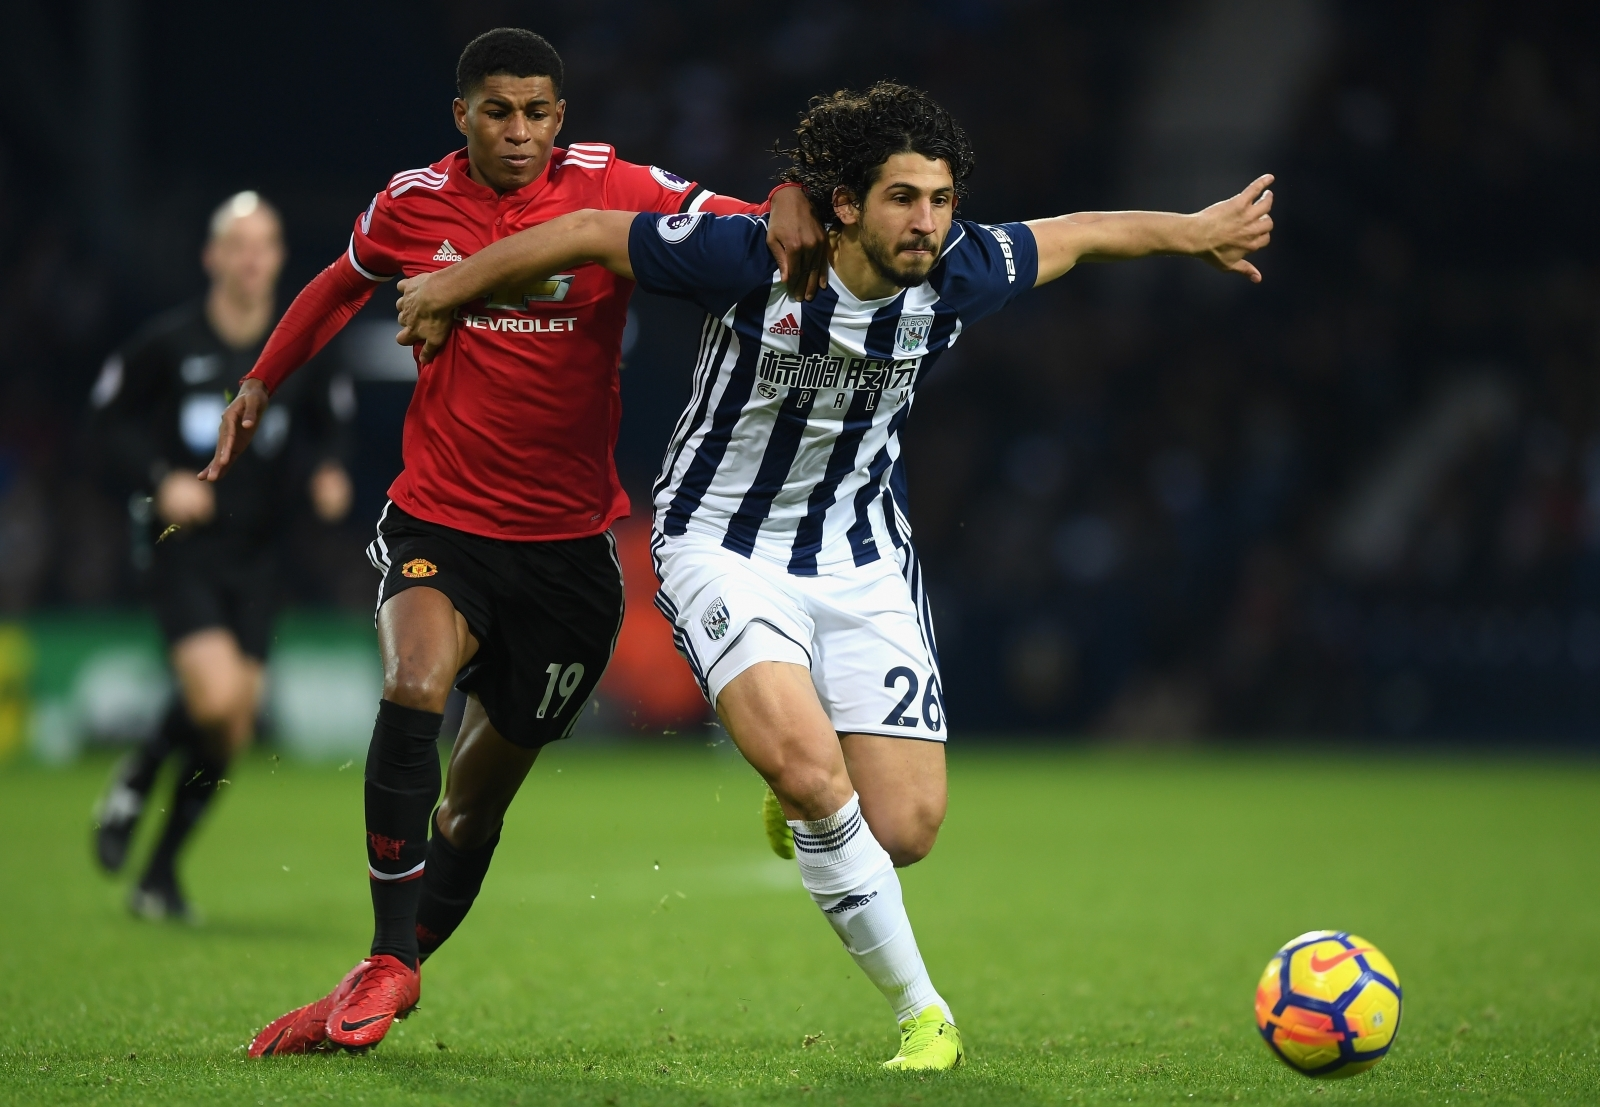 Marcus Rashford and Ahmed Hegazi